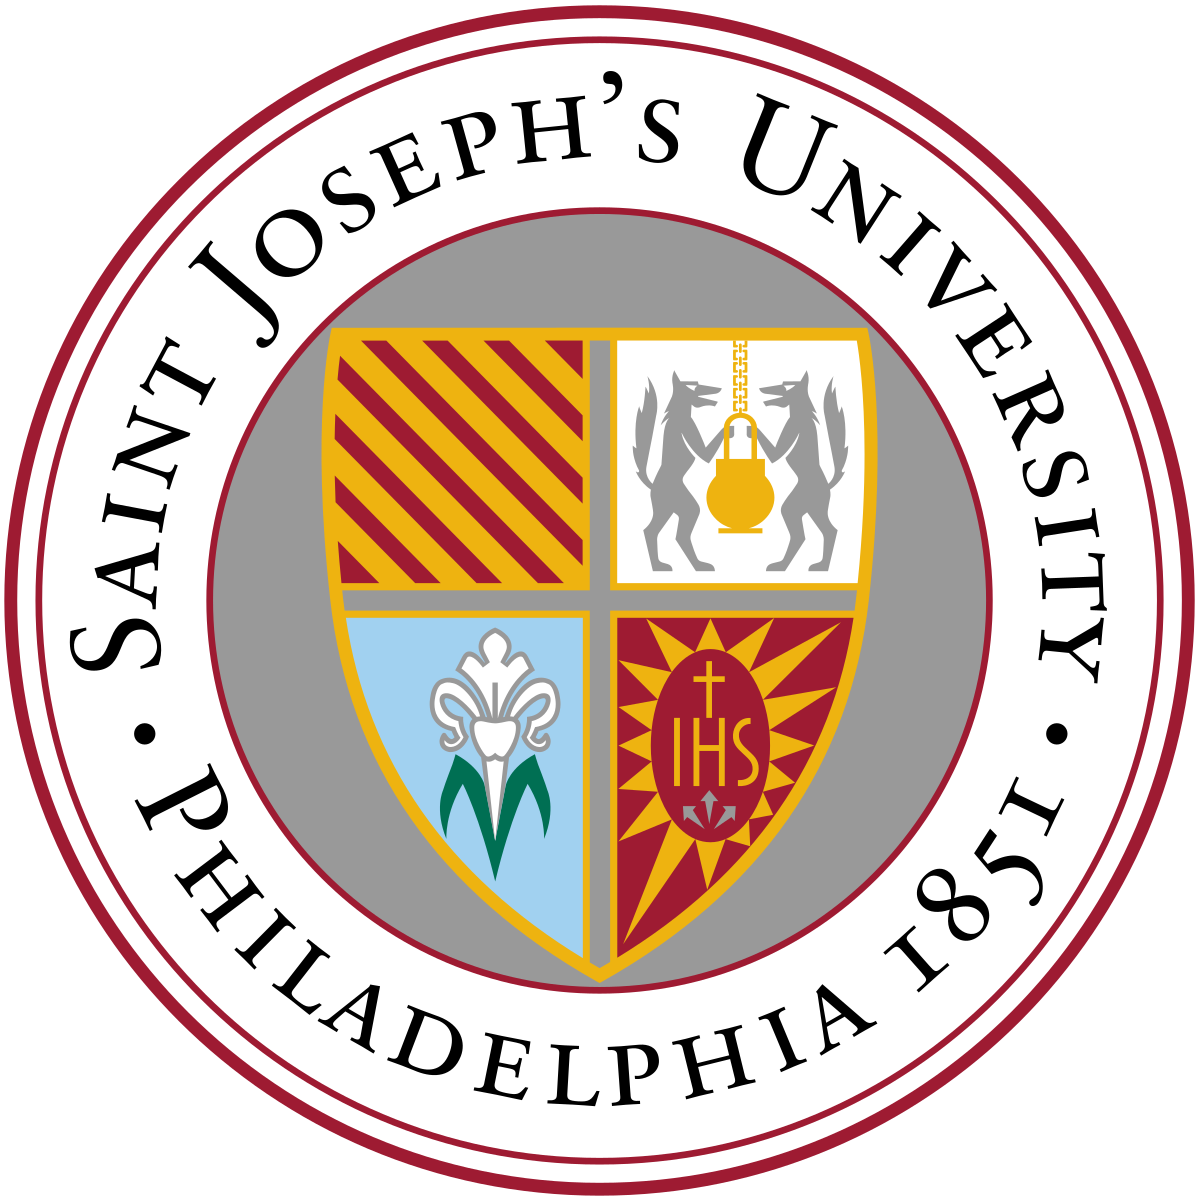 St. Joseph's University - 2011 – 2014Adjunct Professorin the International Marketing MBA ProgramClasses:International Product Development & Brand Management